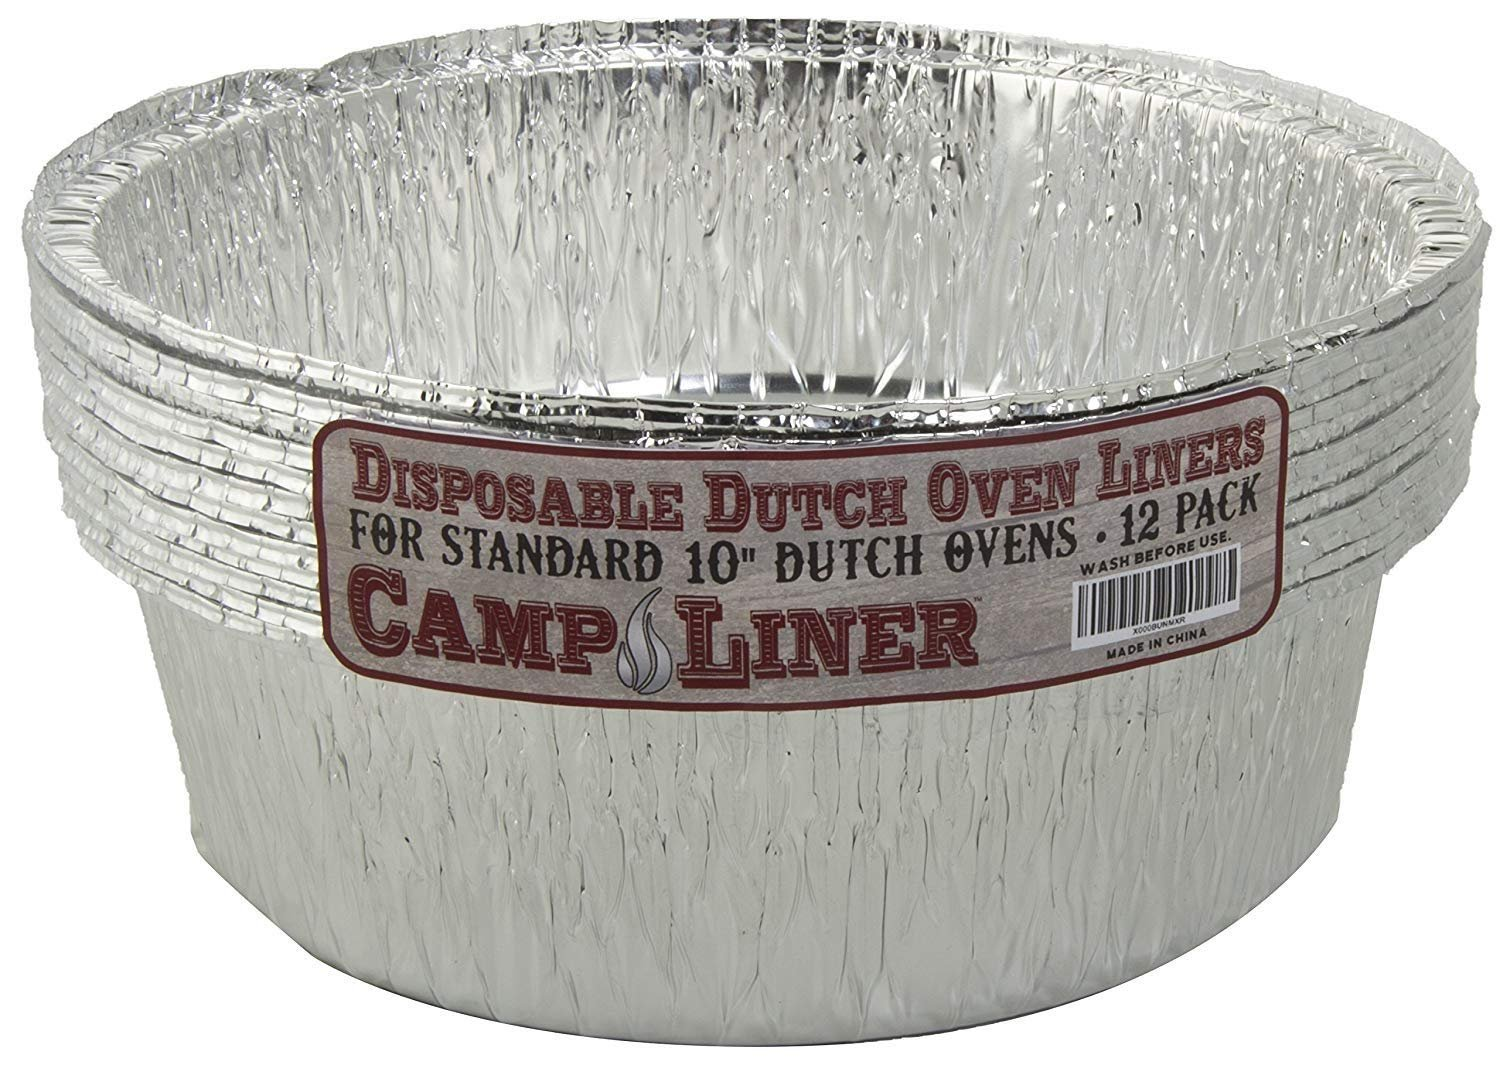 "Disposable Foil Dutch Oven Liner, 12 Pack 10"" 4Q liners, No more Cleaning, Seasoning your Dutch ovens. Lodge, Camp Chef. 12-10''"